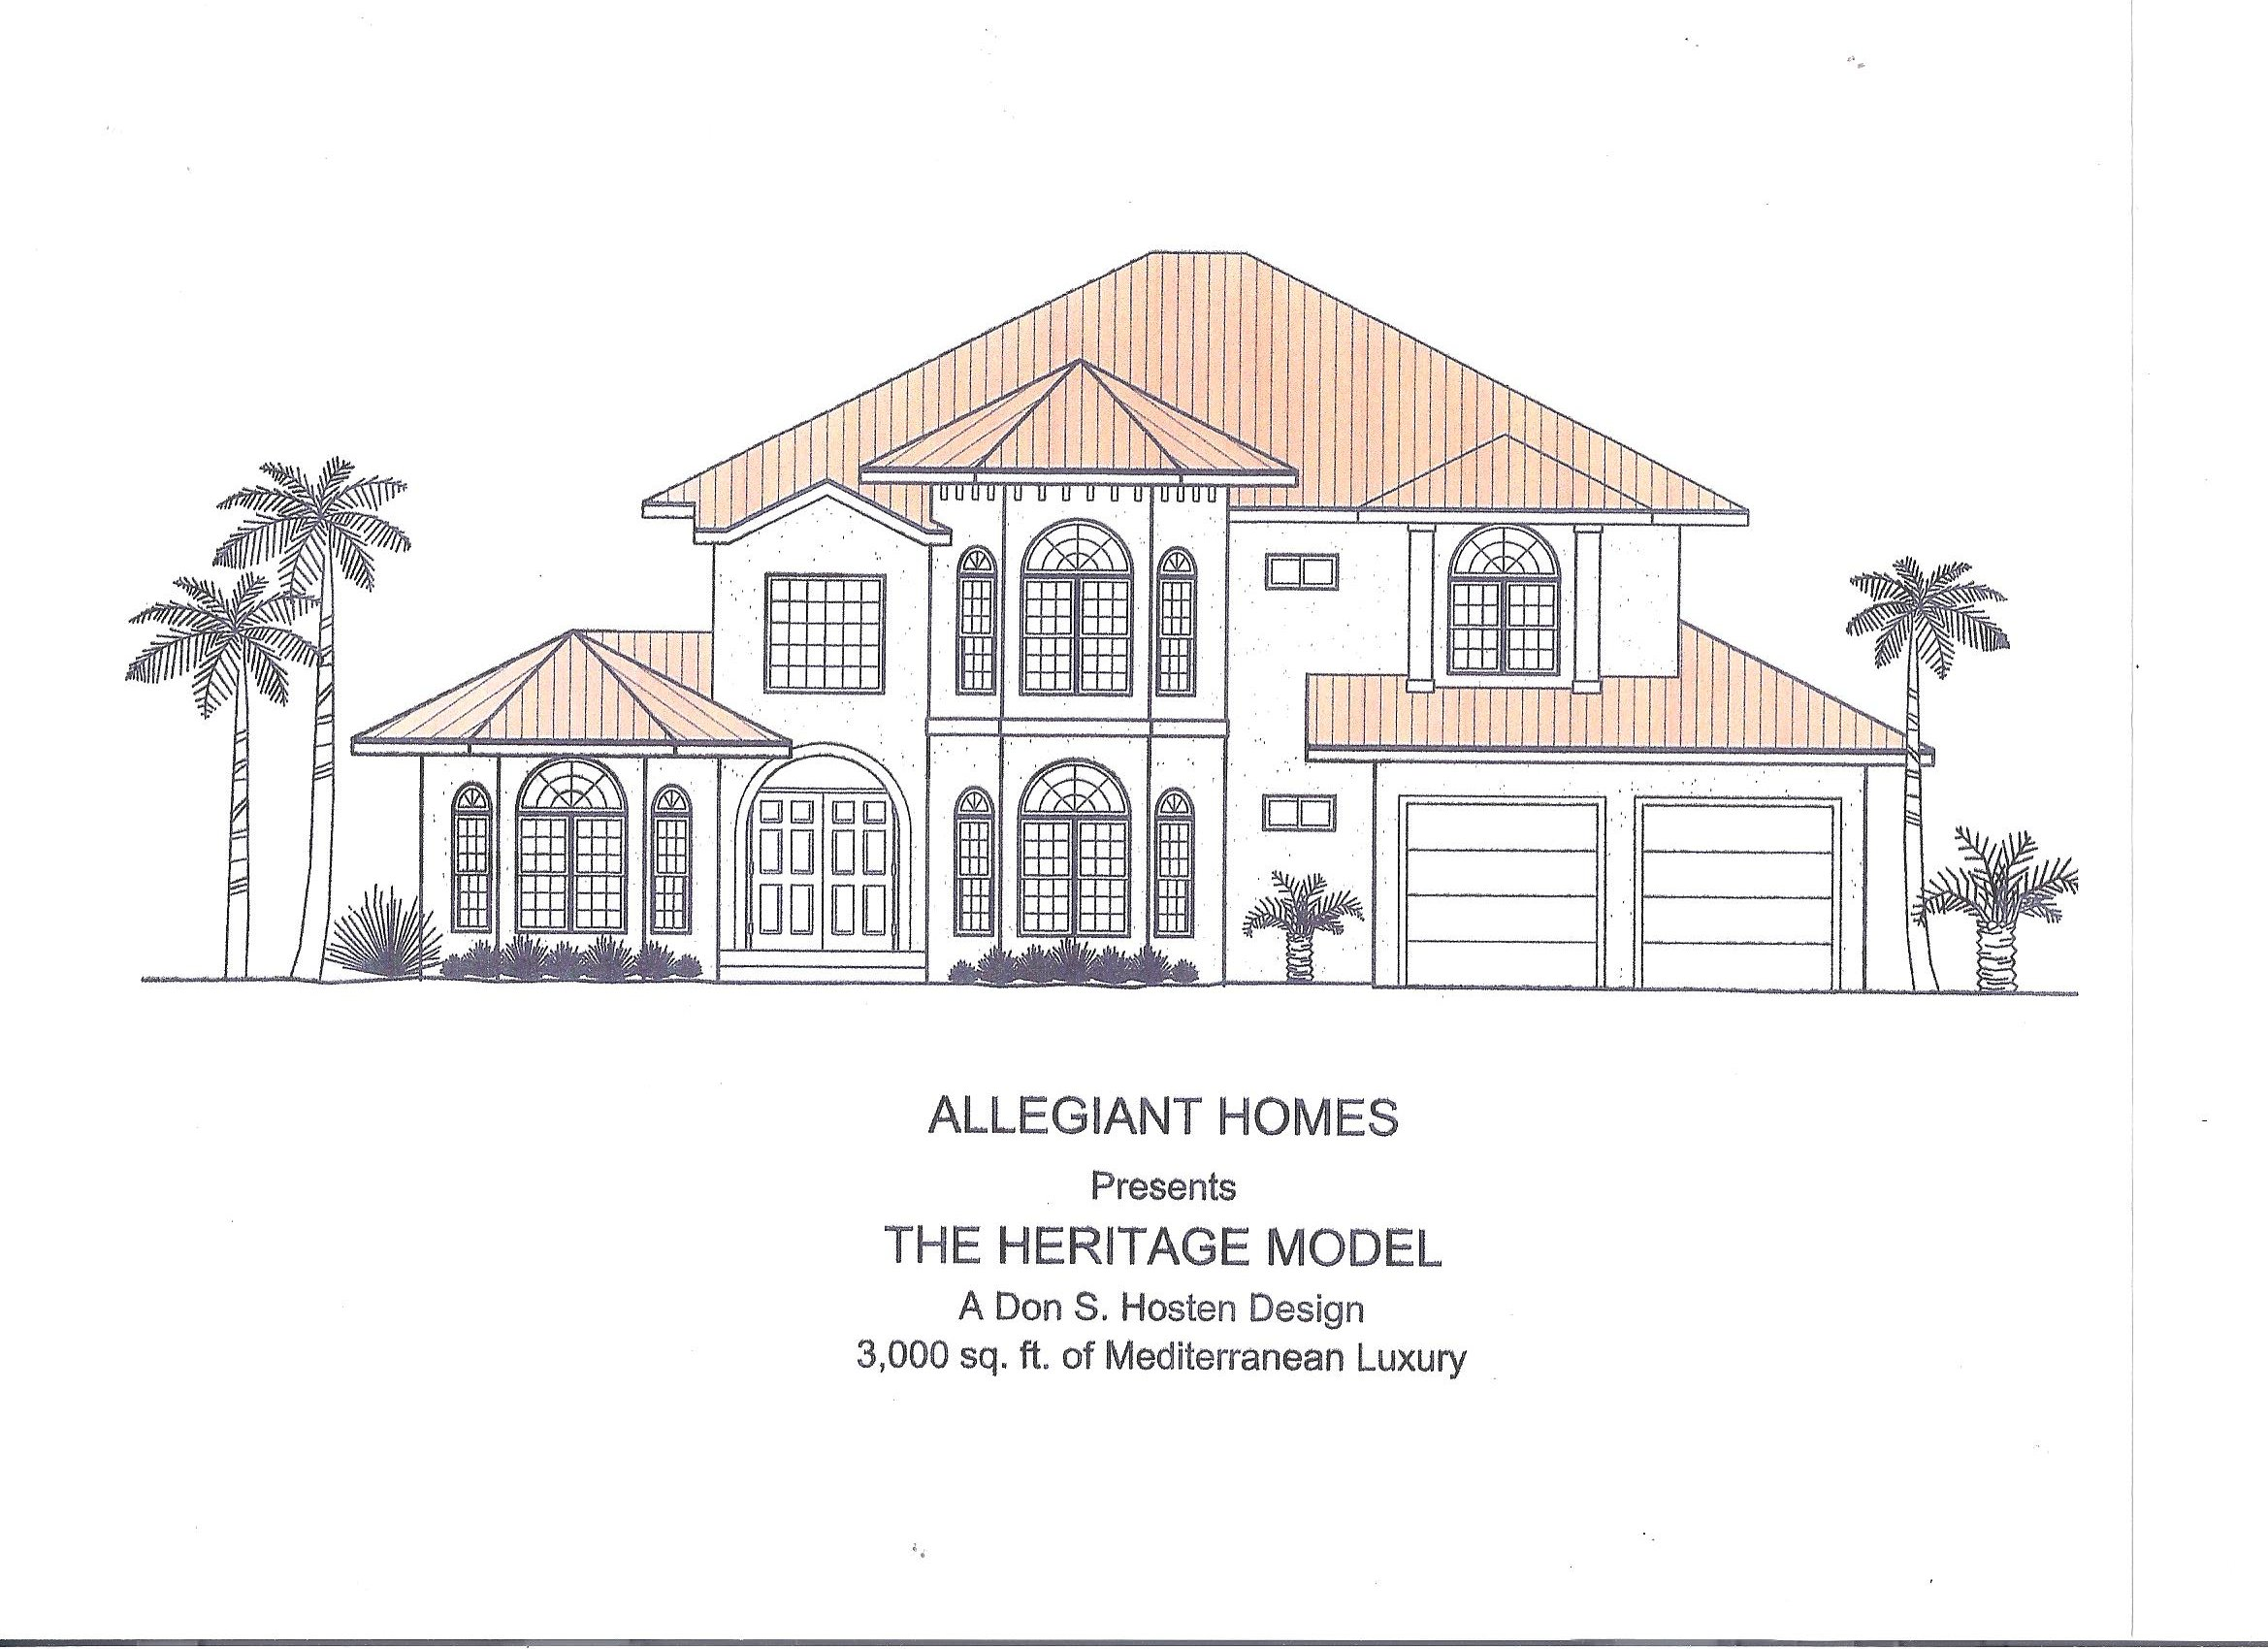 Heritage model maracas garden trinidad and tobago for Modern homes designs trinidad